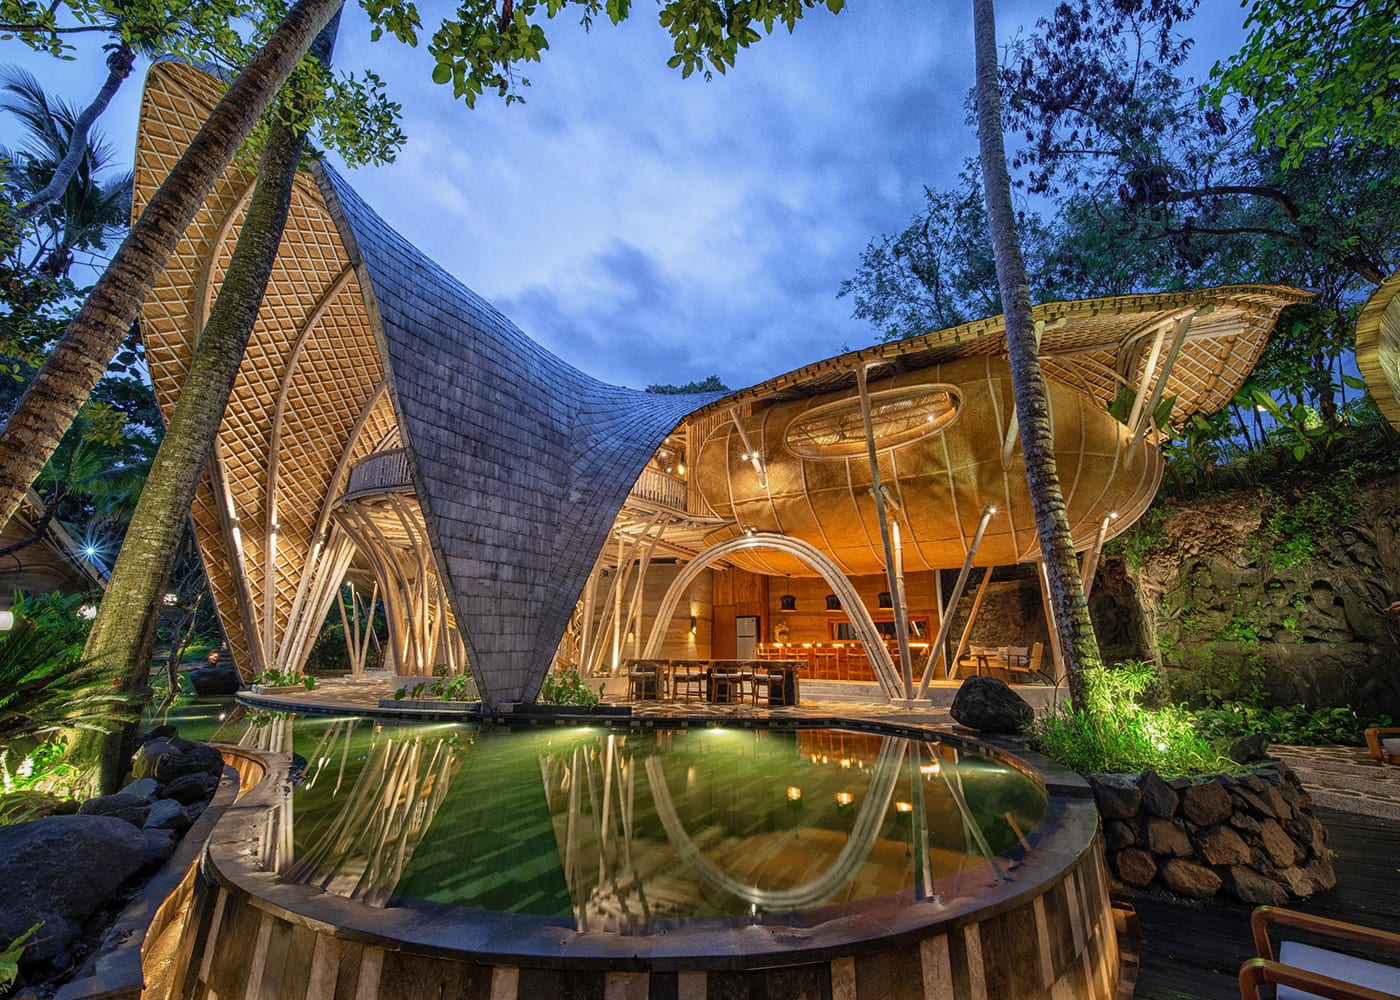 Ulaman Eco Retreat is an ecological wellness resort in Bali that blends nature with utmost luxury…